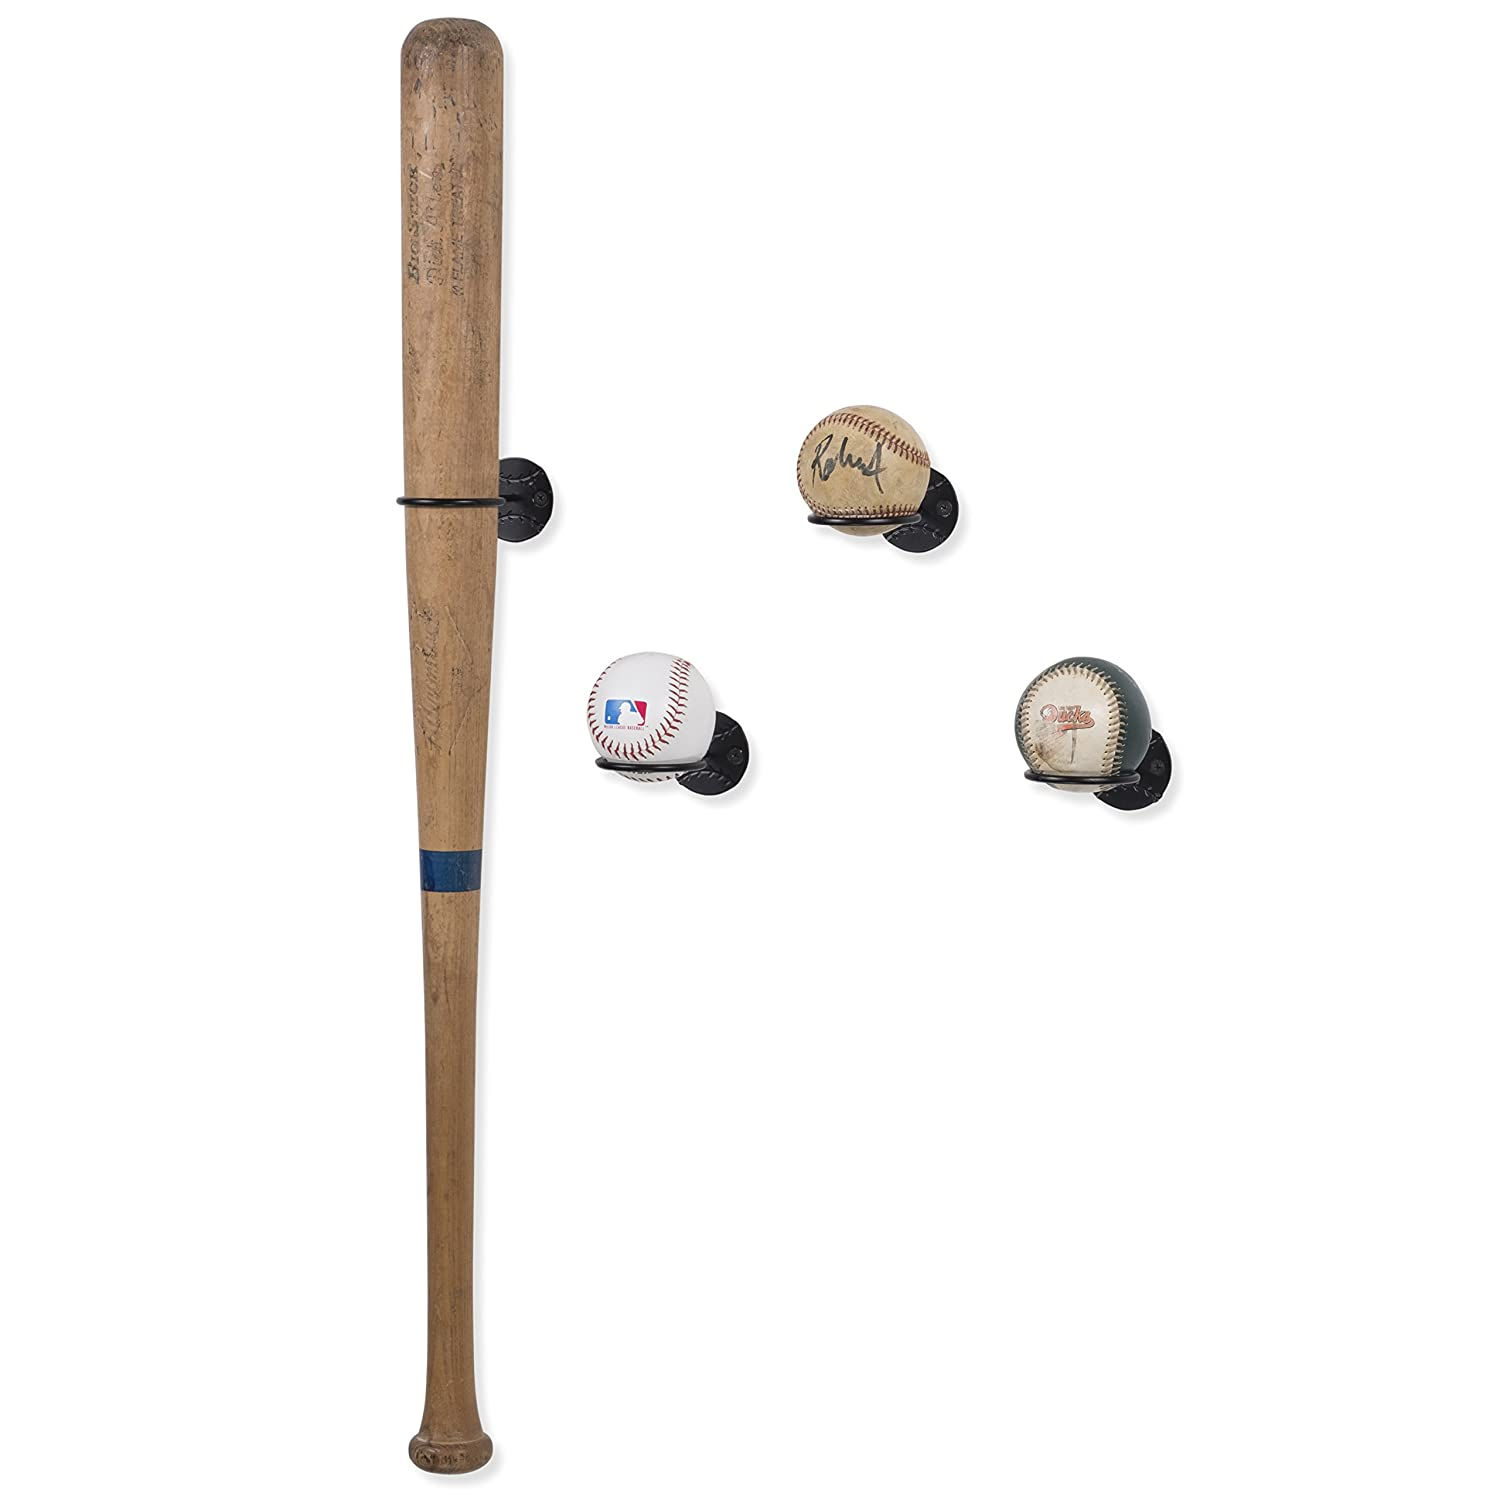 Wallniture Sporta Sports Memorabilia Baseball Bat and Ball Rack Holder Wall Mounted Display Rack Steel Black Set of 4